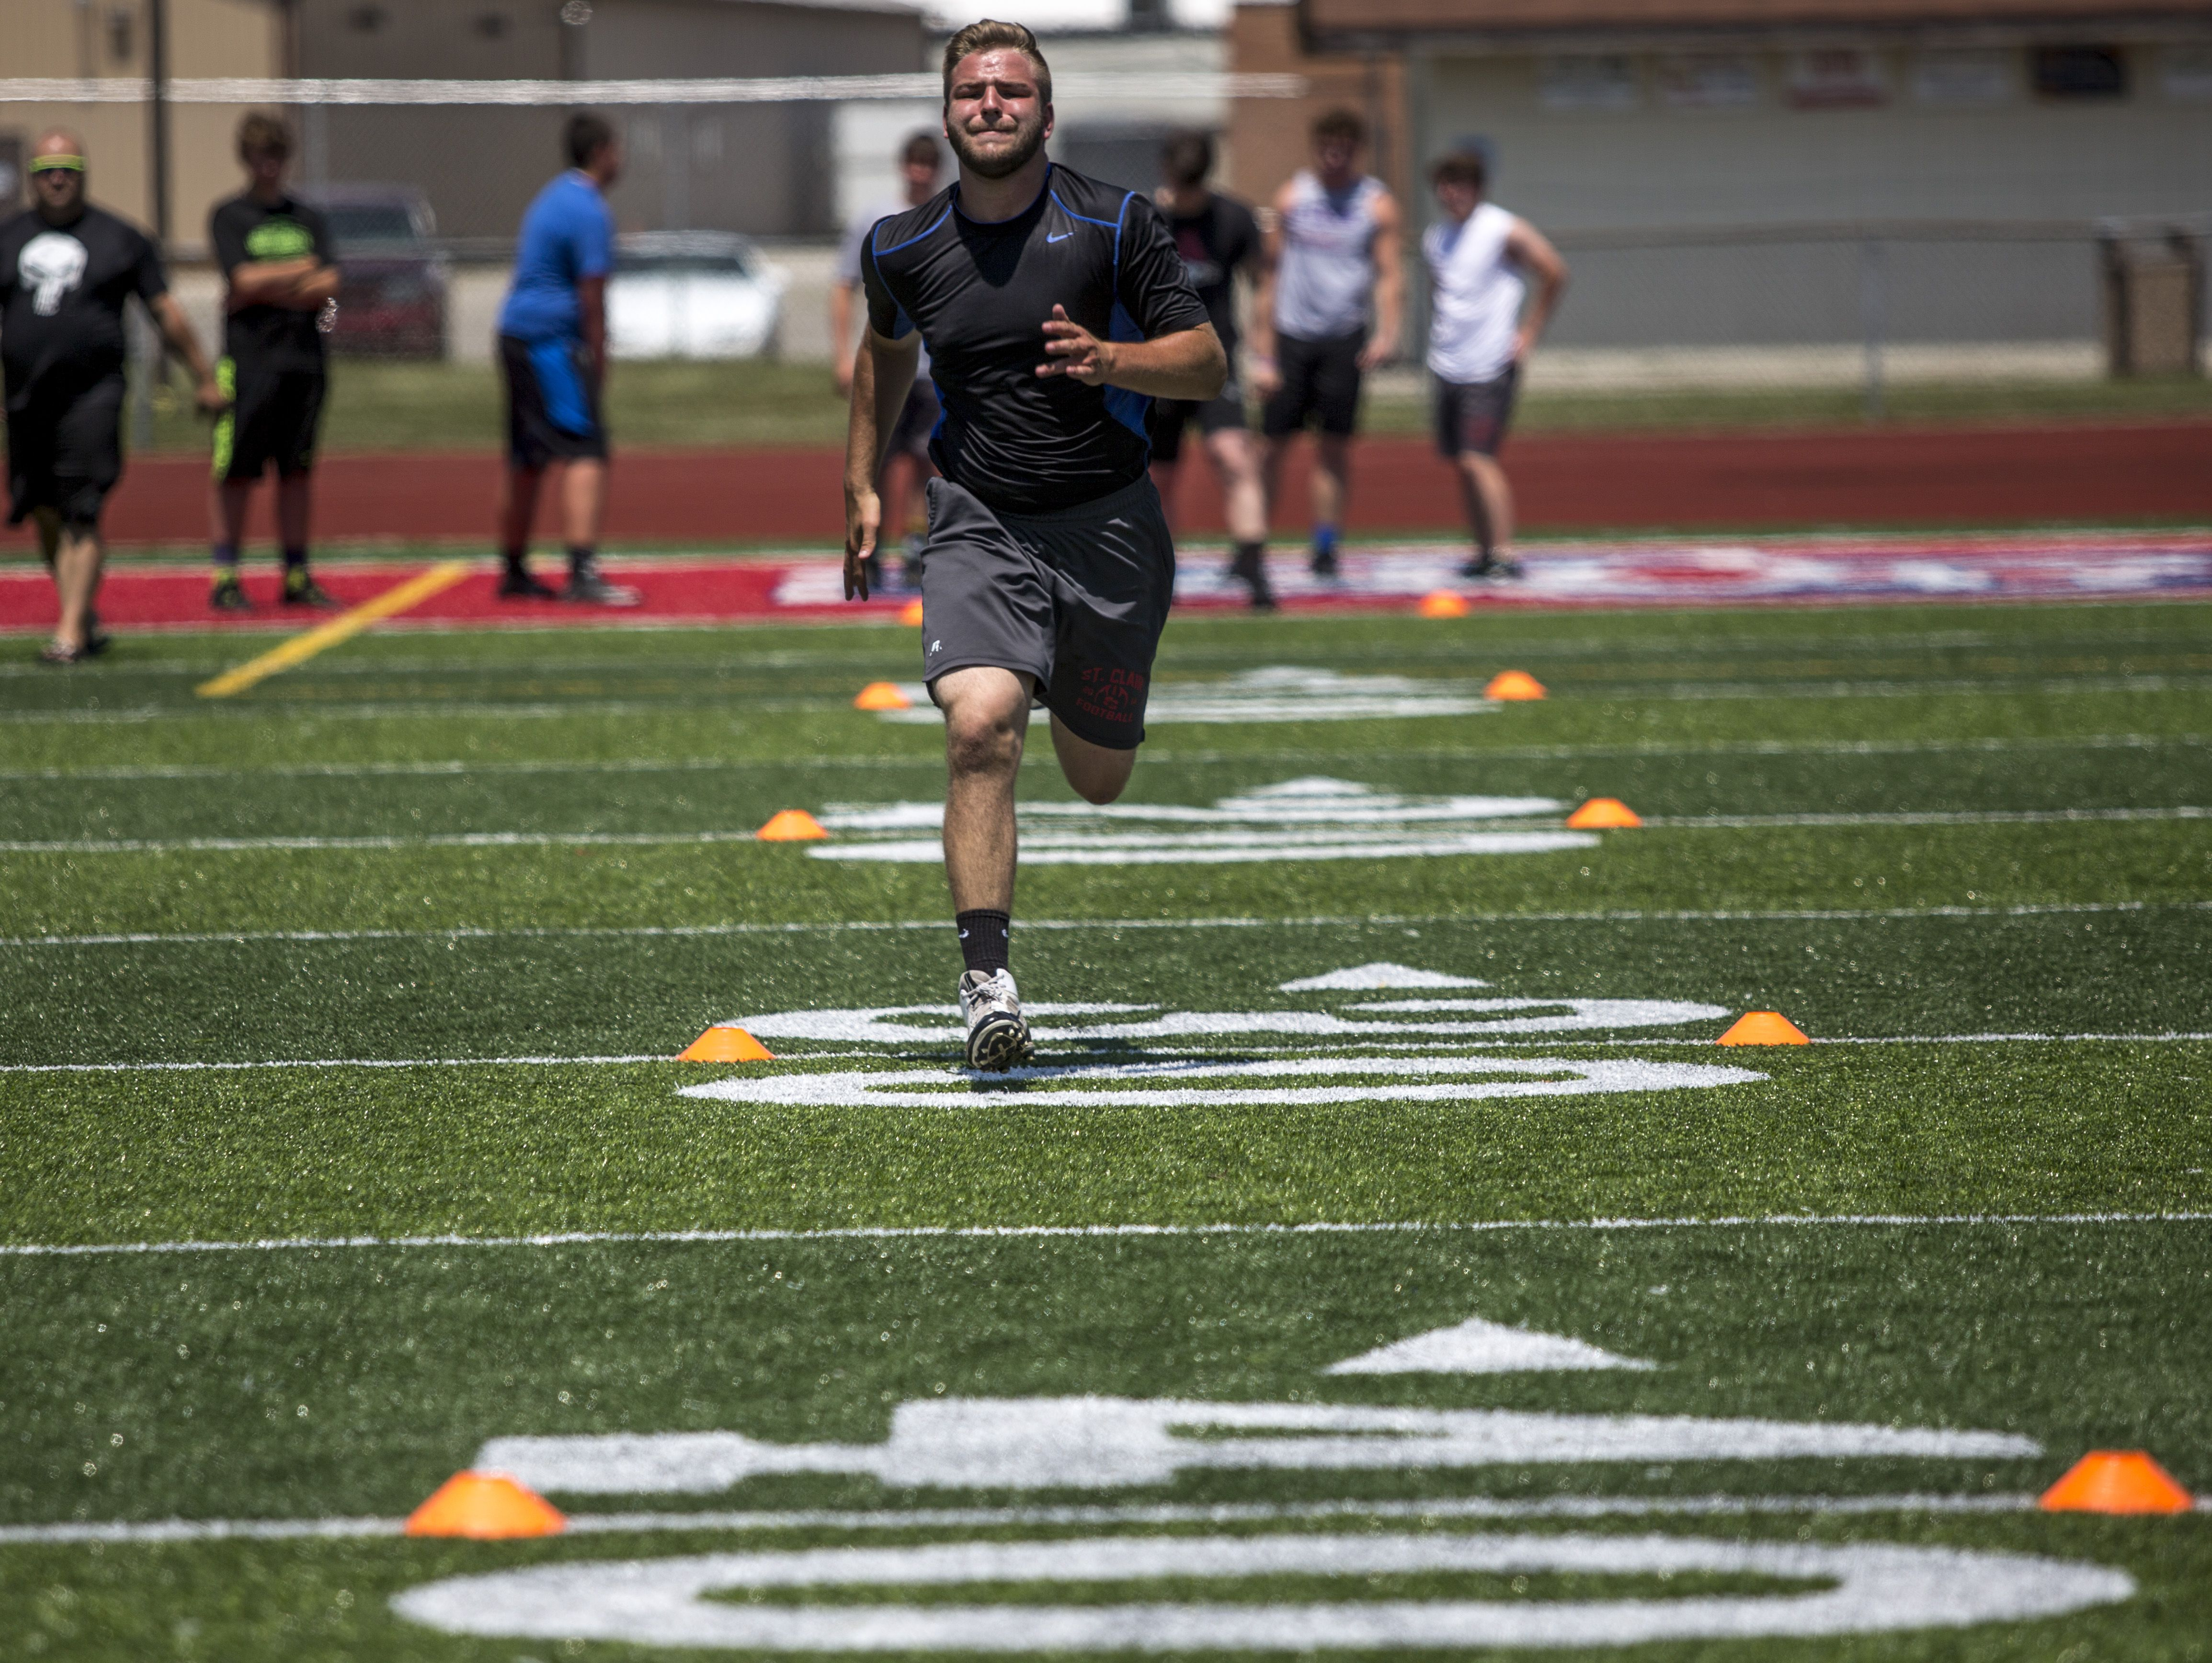 Noah Gabriel, 15, of St. Clair, does a 40-yard sprint during Lelito's Legacy Camp Friday, June 24, 2016 at the East China Stadium.